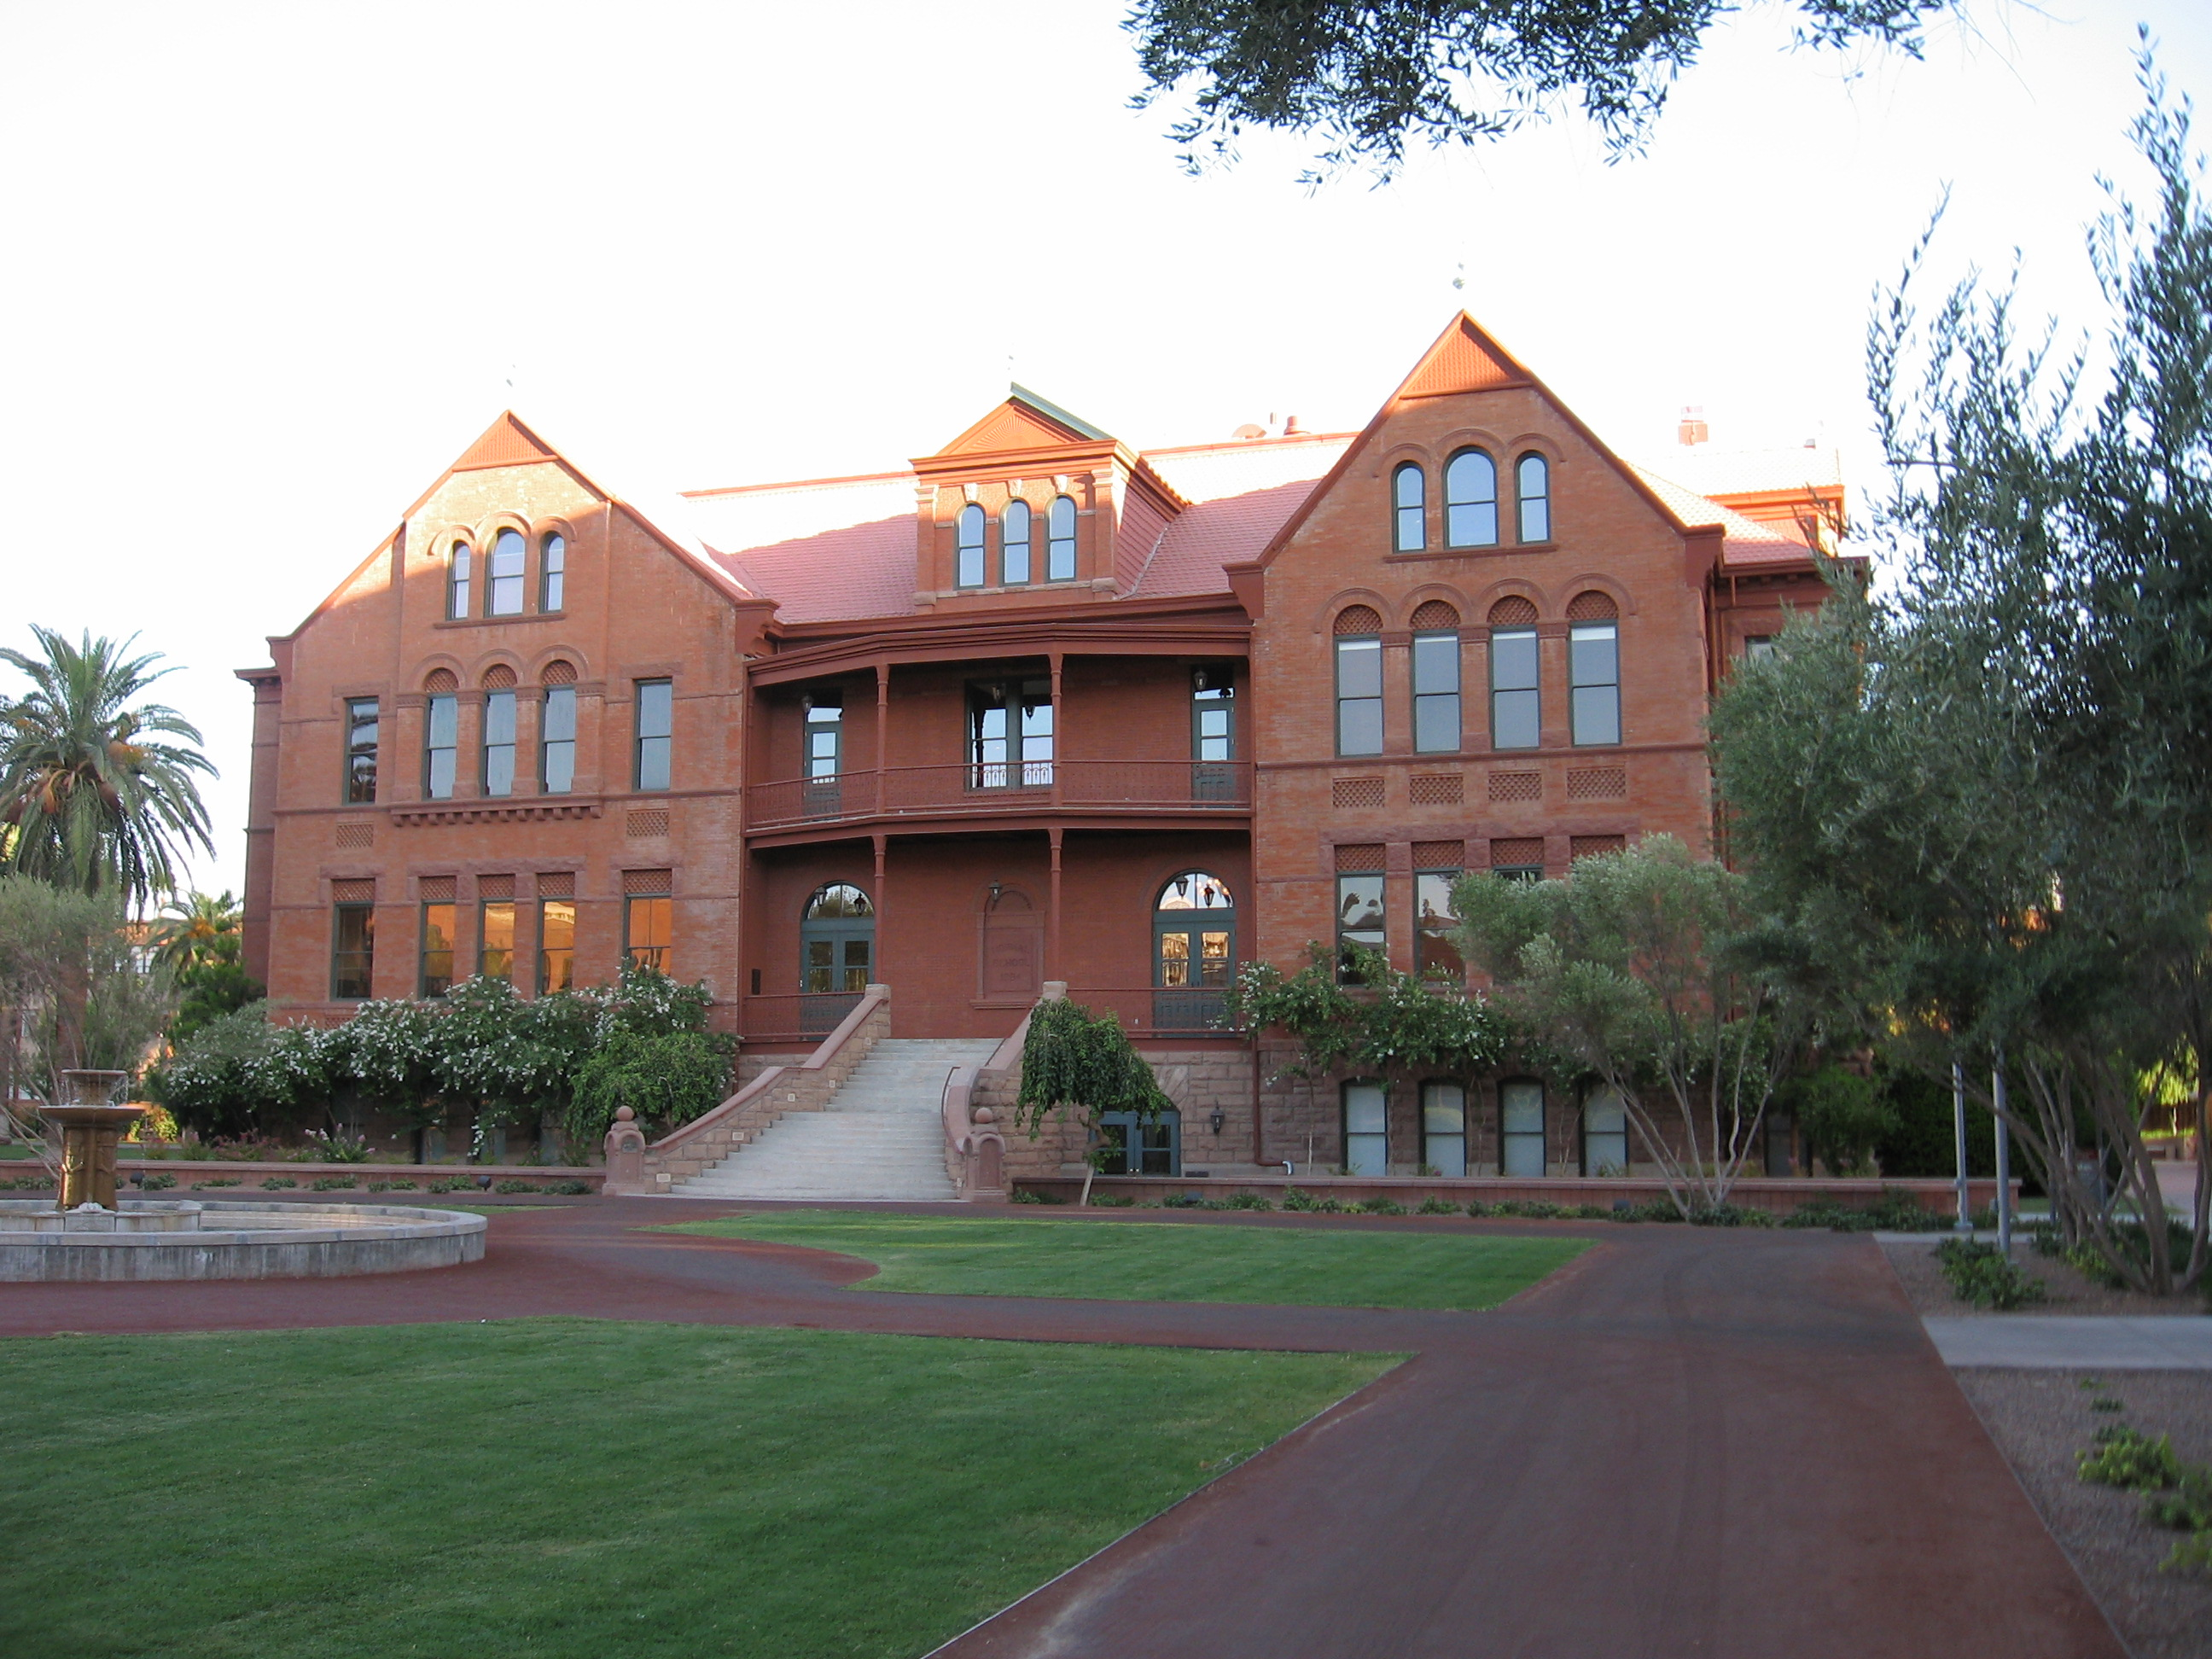 history of arizona state university - wikipedia